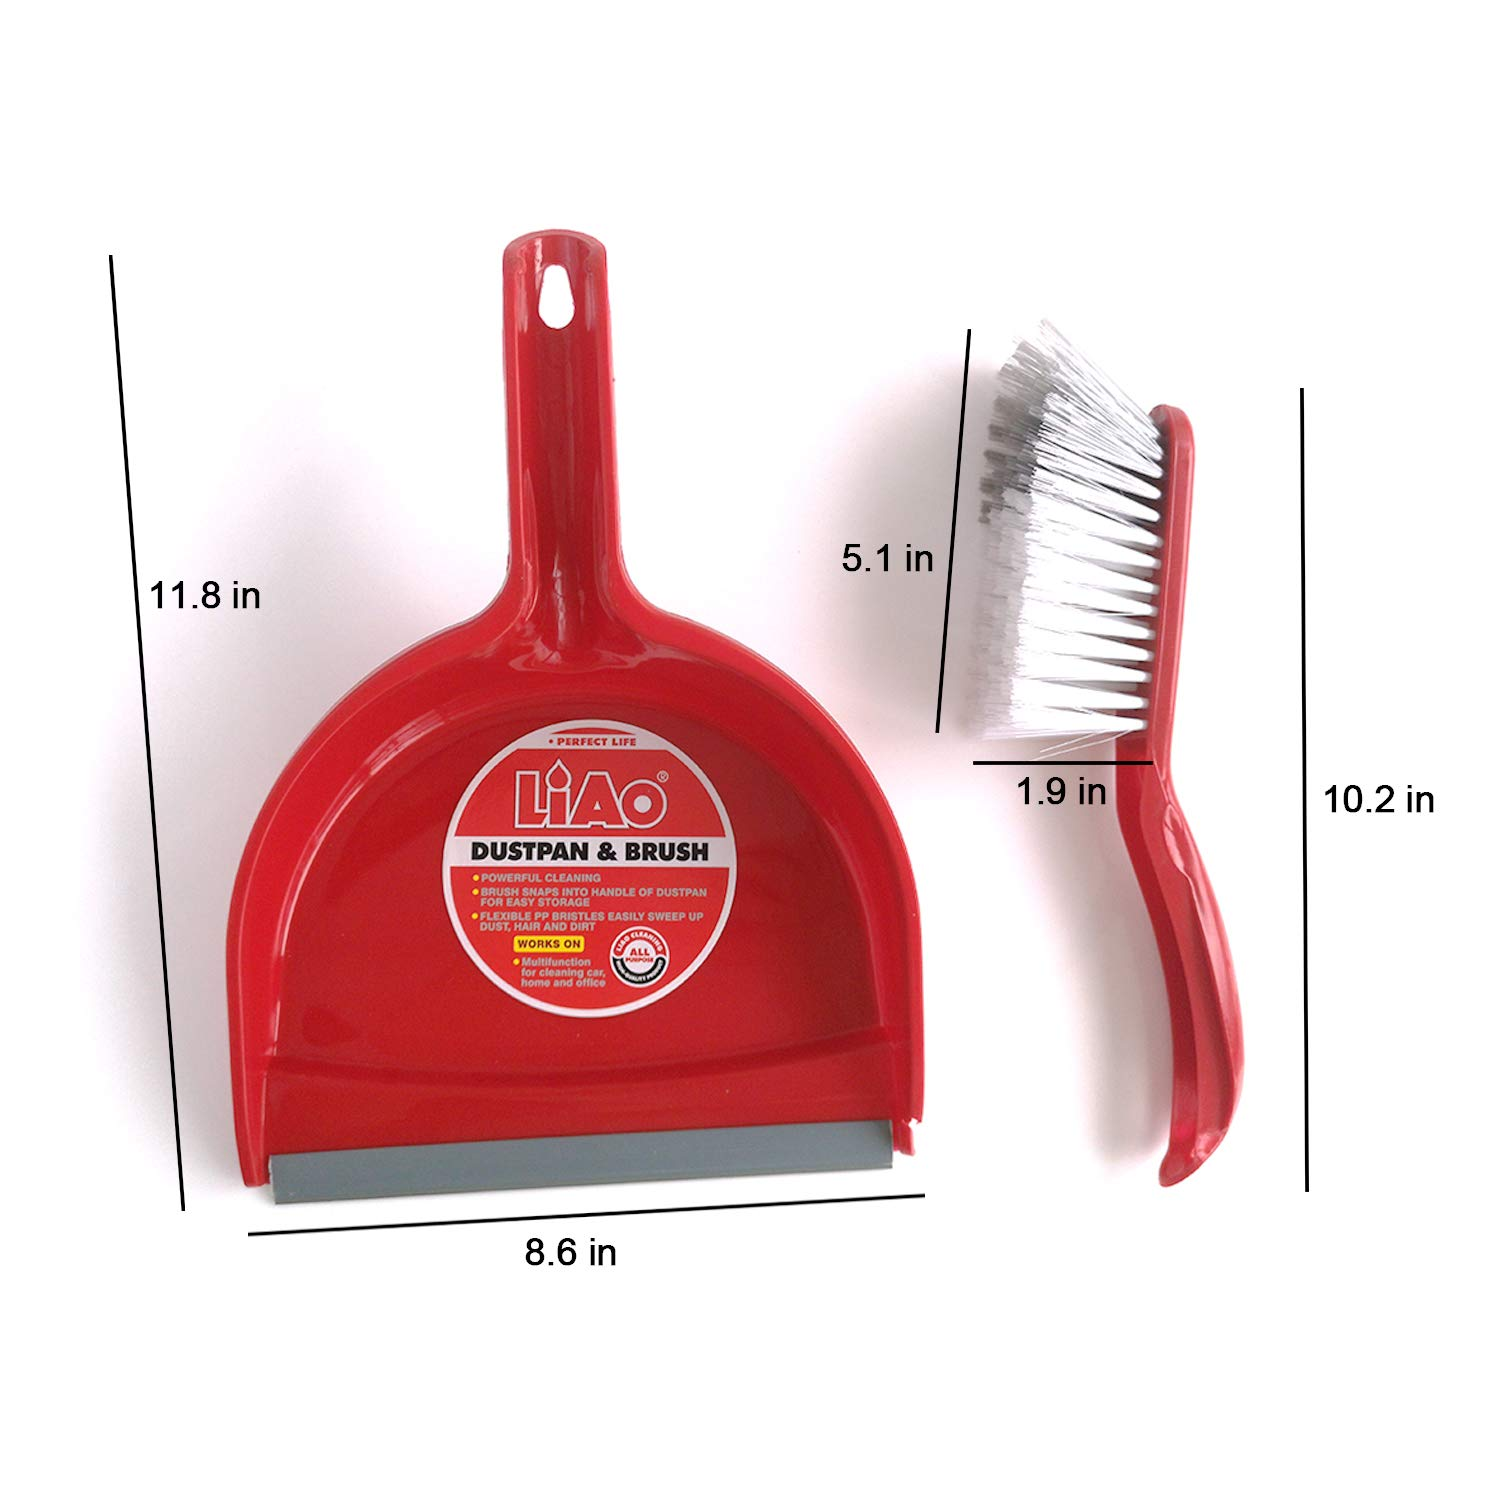 Red 1 Count Dustpan and Brush Set Topgalaxy.Z DustPan and Broom Set//Dust pan Cleans Broom Combo For Home Kitchen Room Office